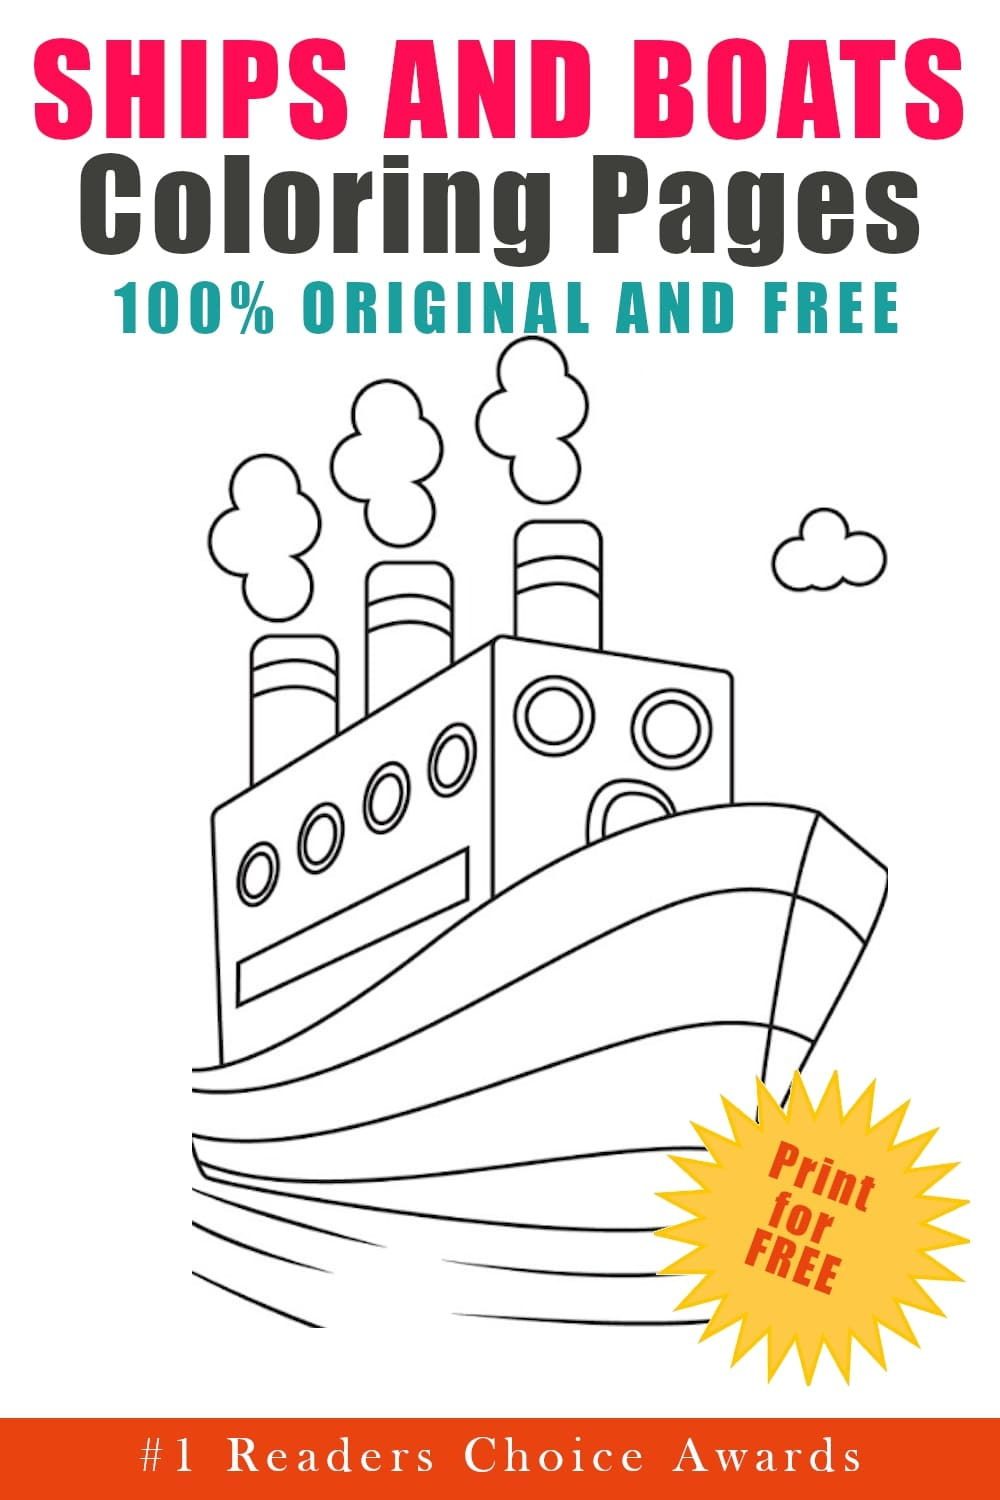 original and free ships and boats coloring pages